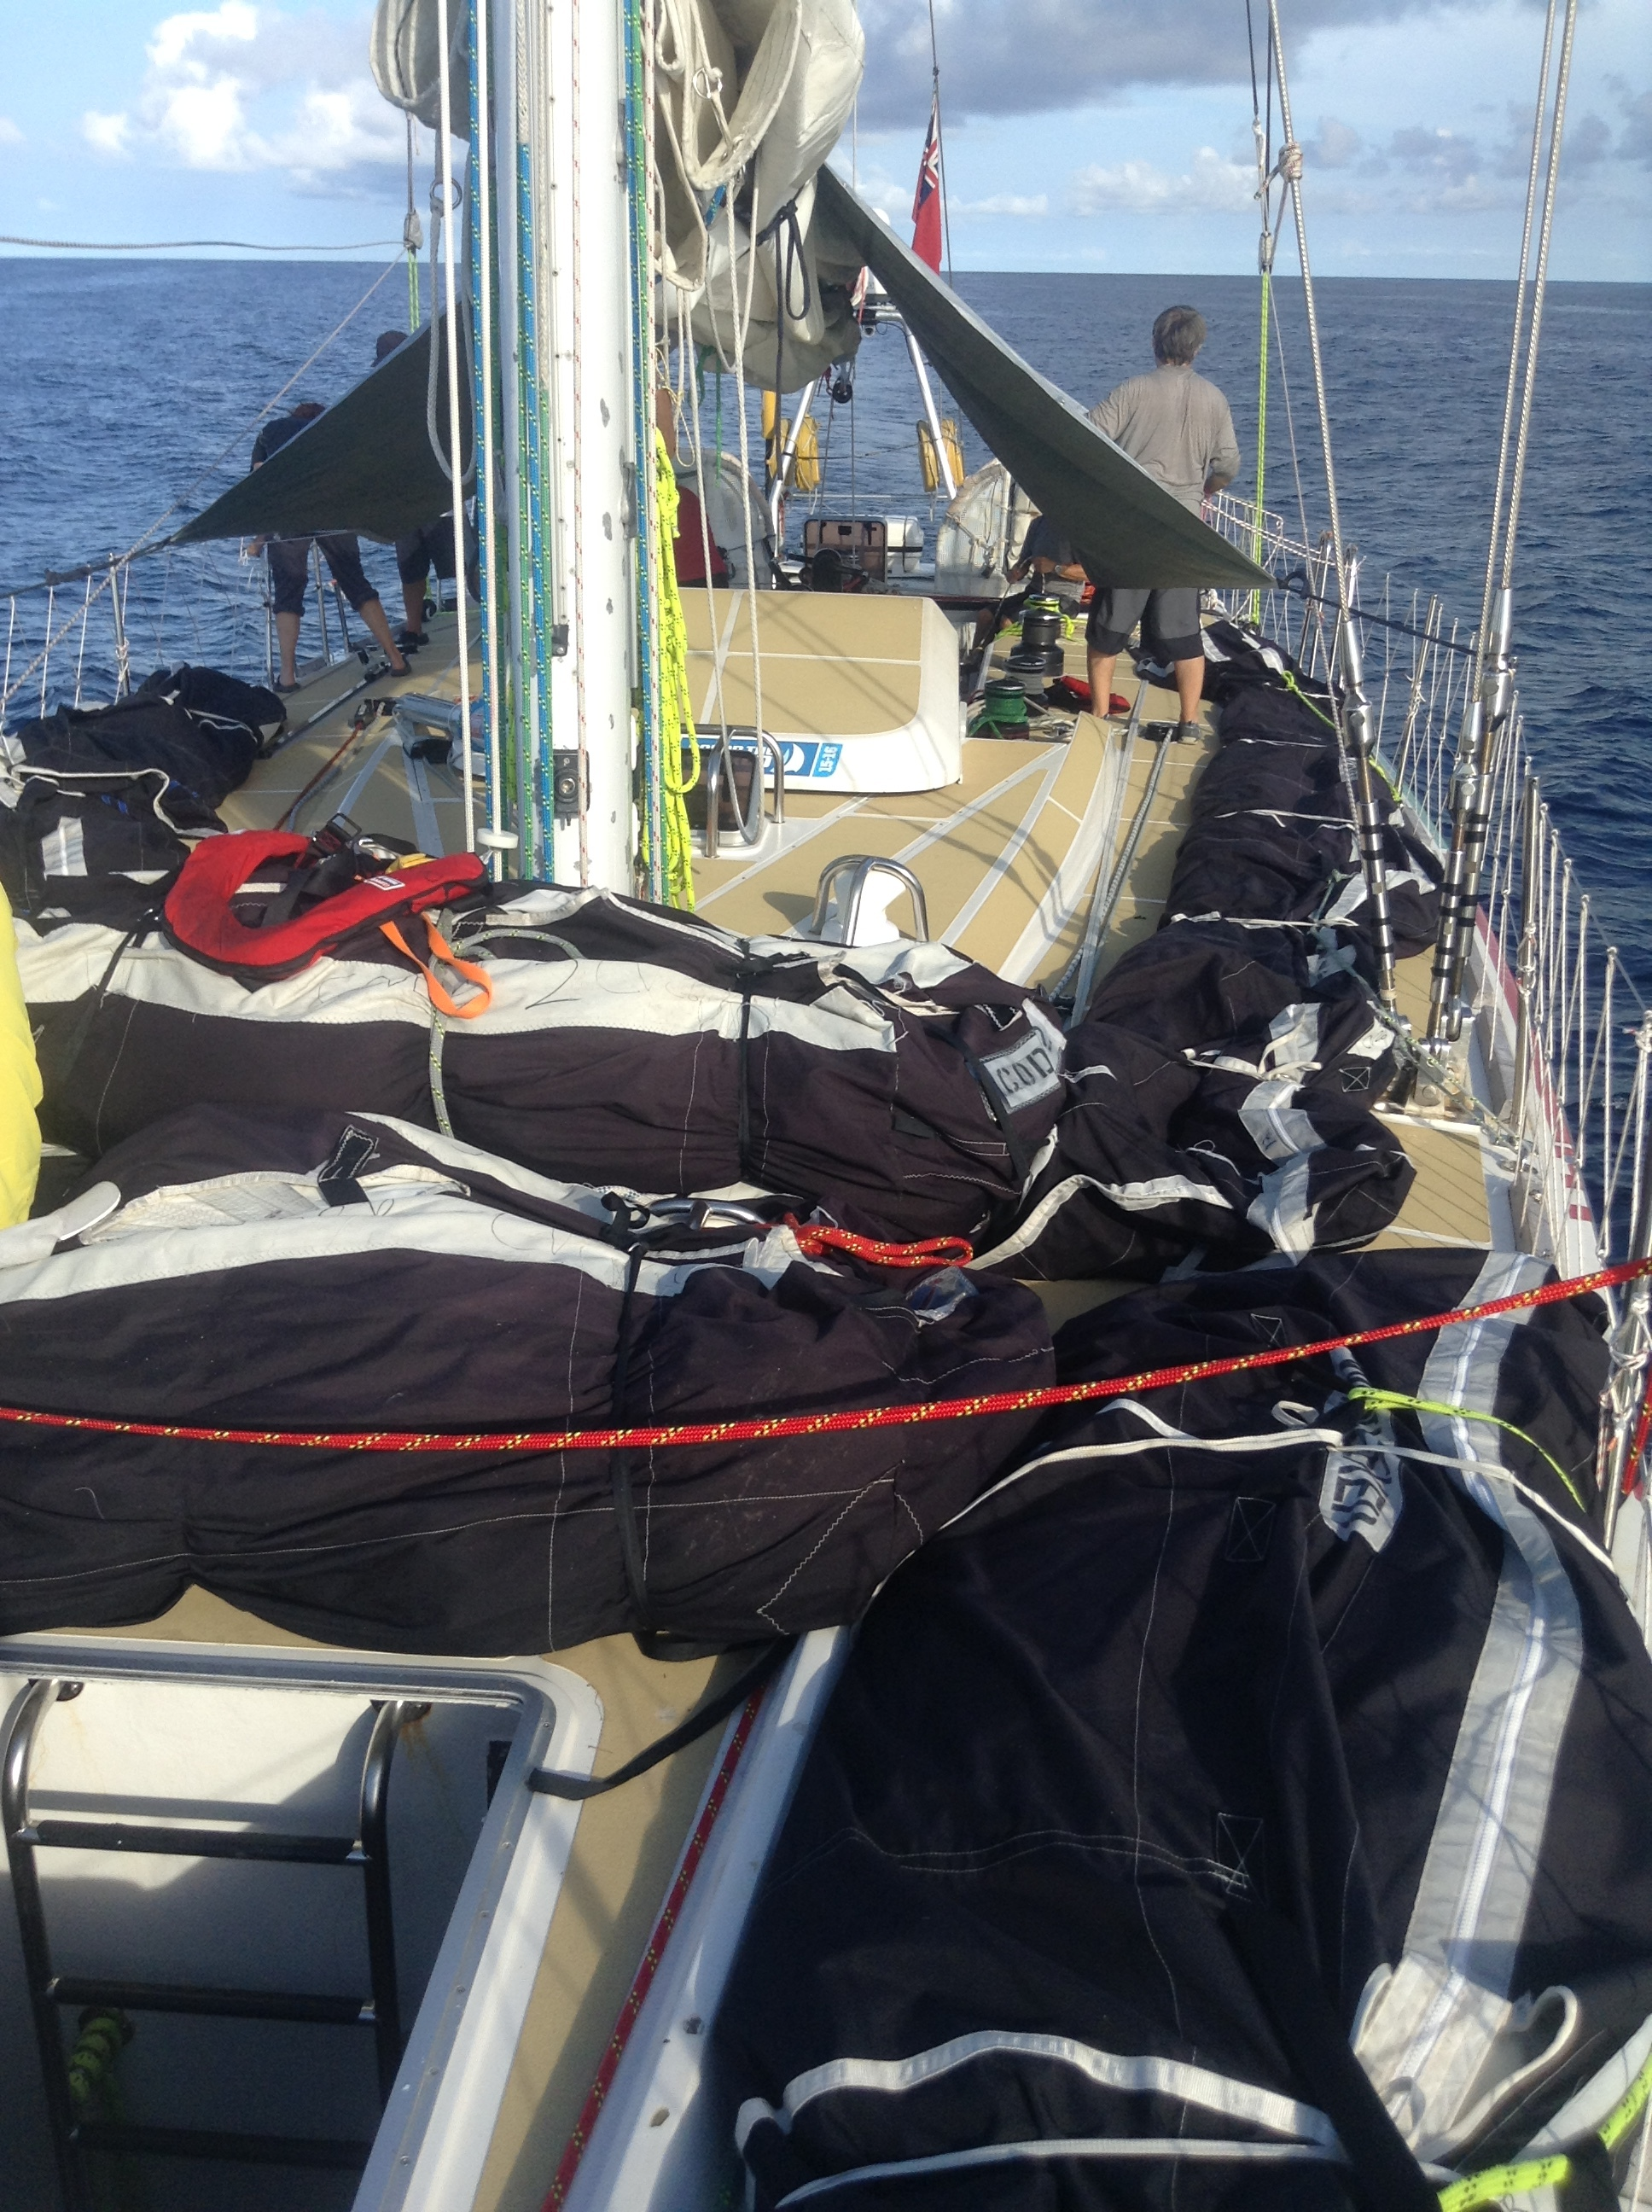 All sails in bags on deck for inspection